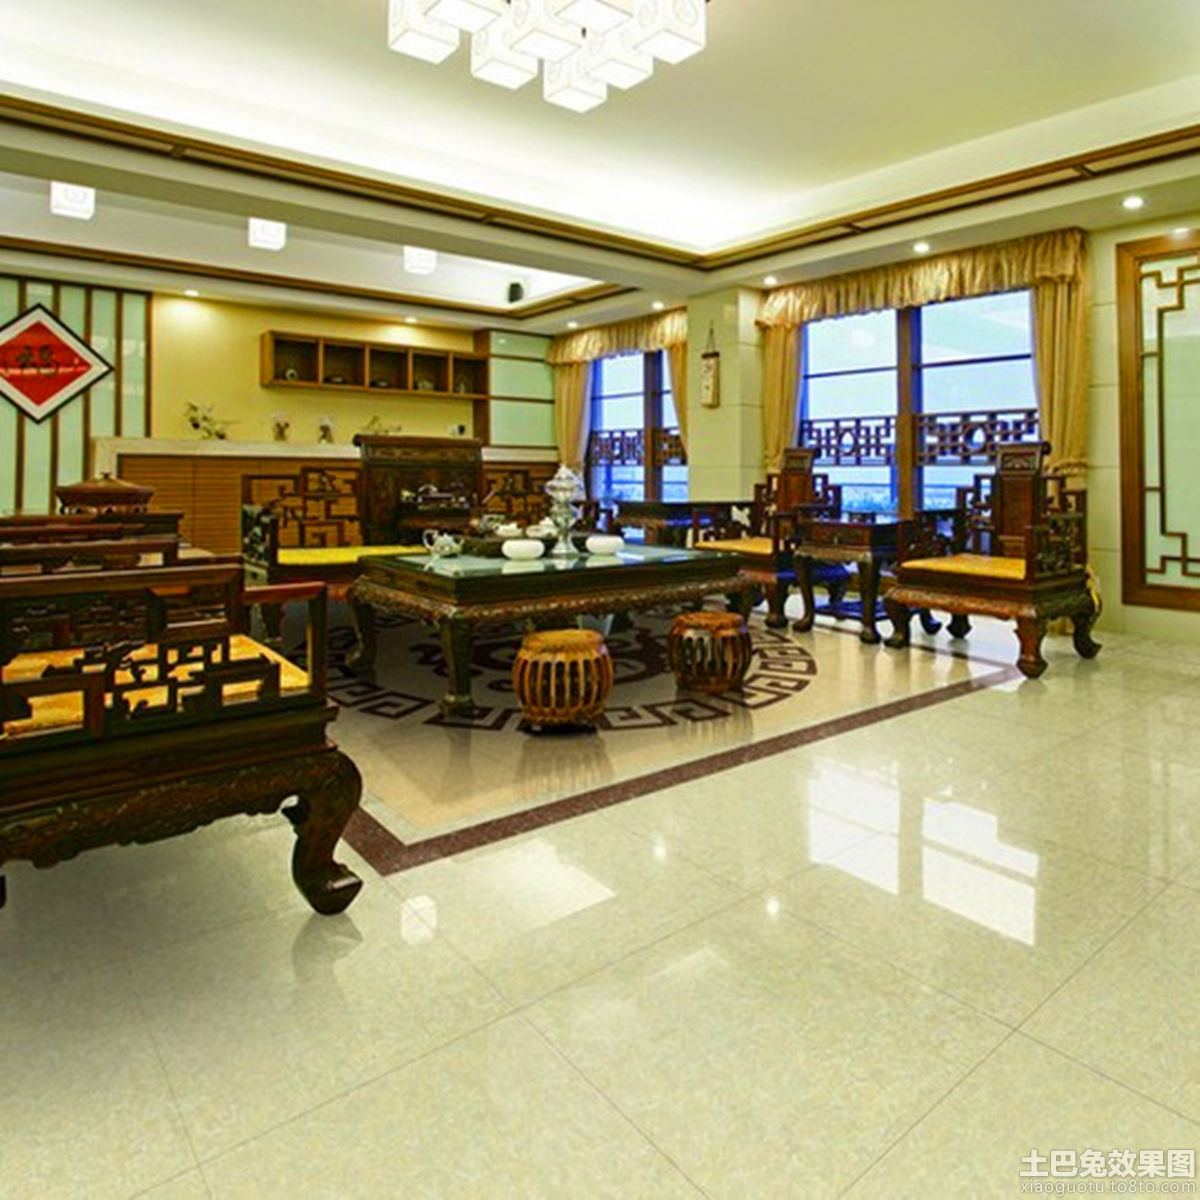 granite kitchens kitchen island dimensions 客厅地面砖_土巴兔装修效果图